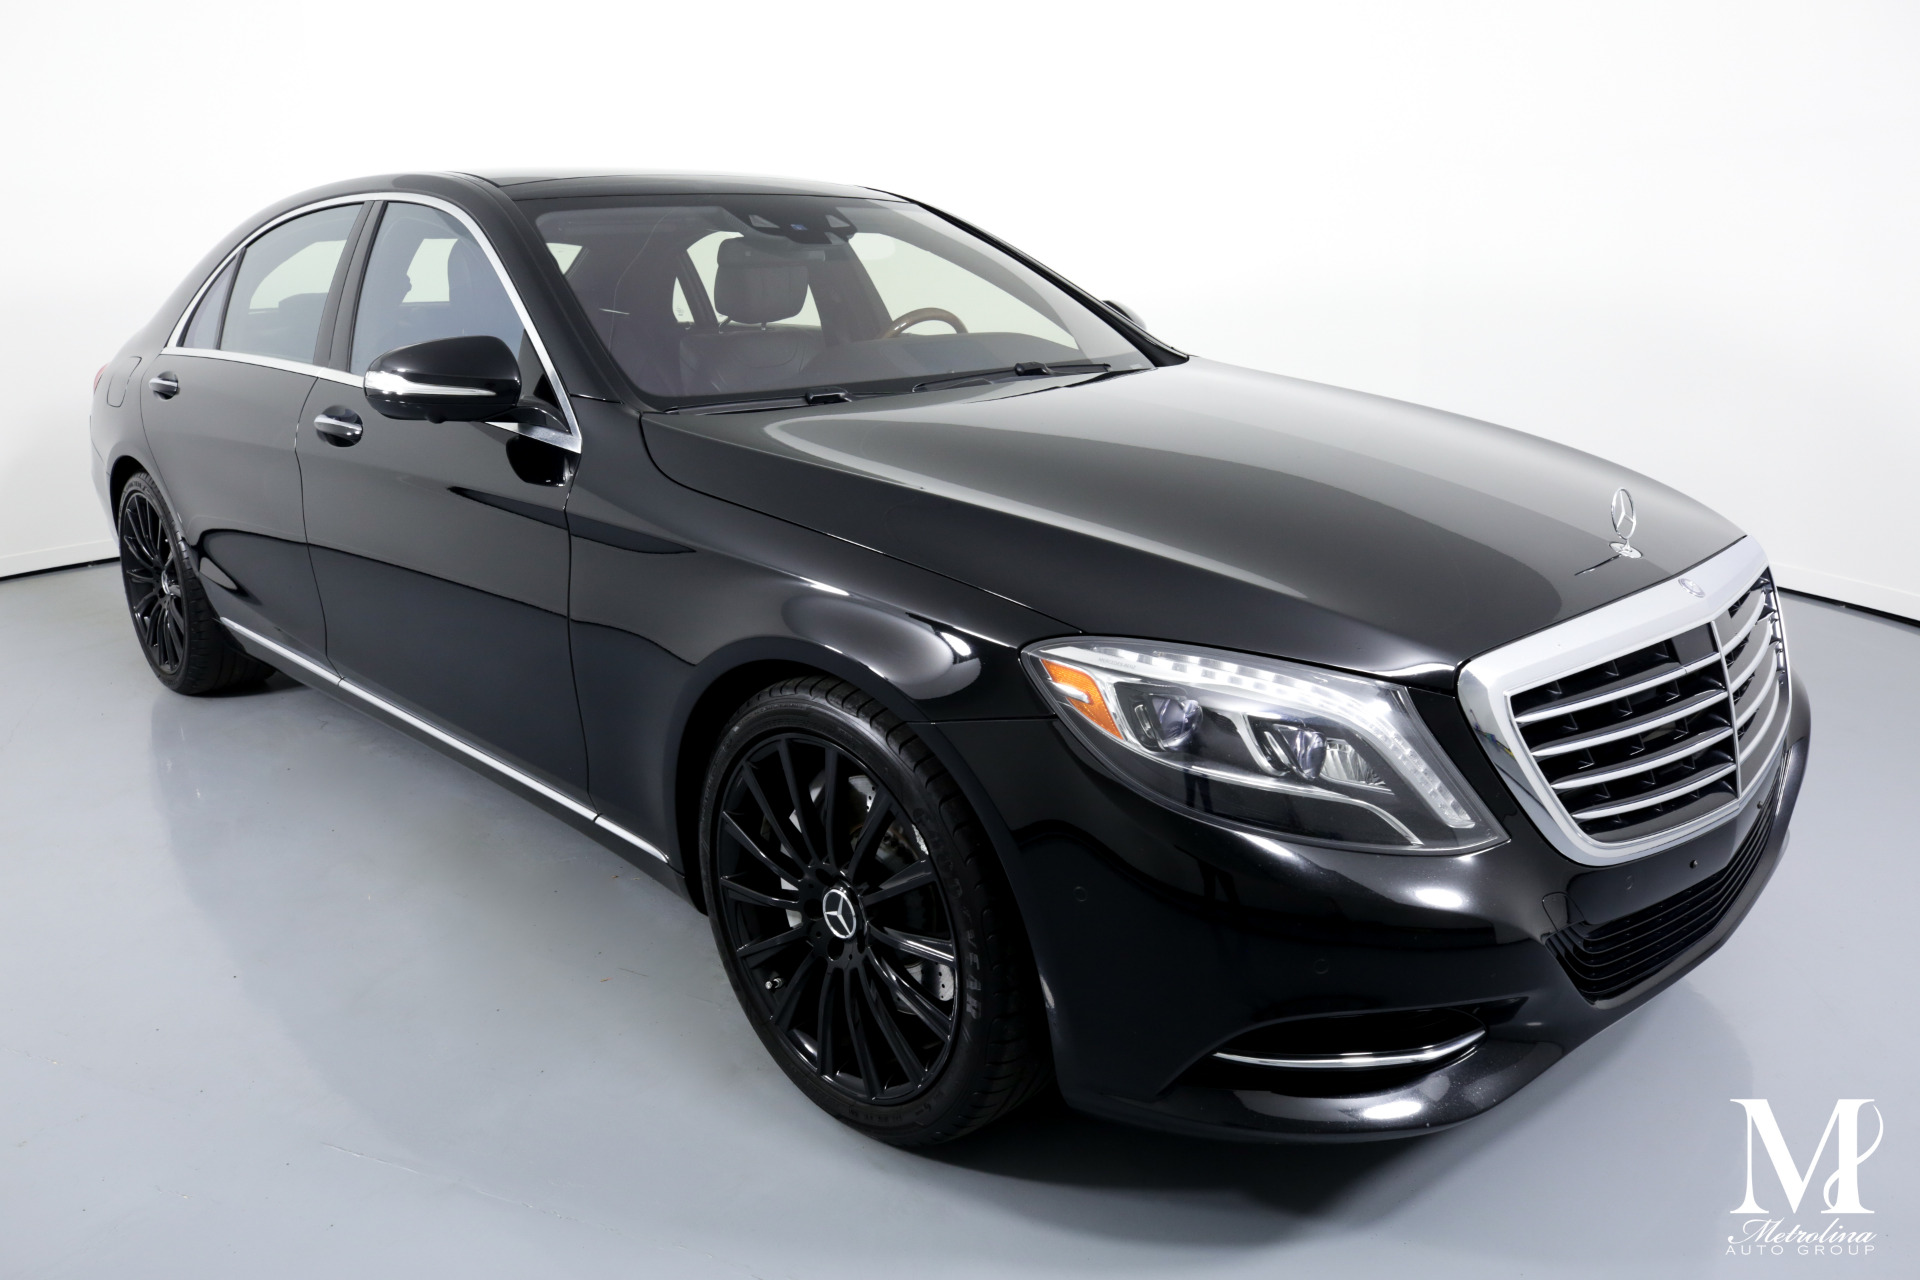 Used 2014 Mercedes-Benz S-Class S 550 for sale Sold at Metrolina Auto Group in Charlotte NC 28217 - 2